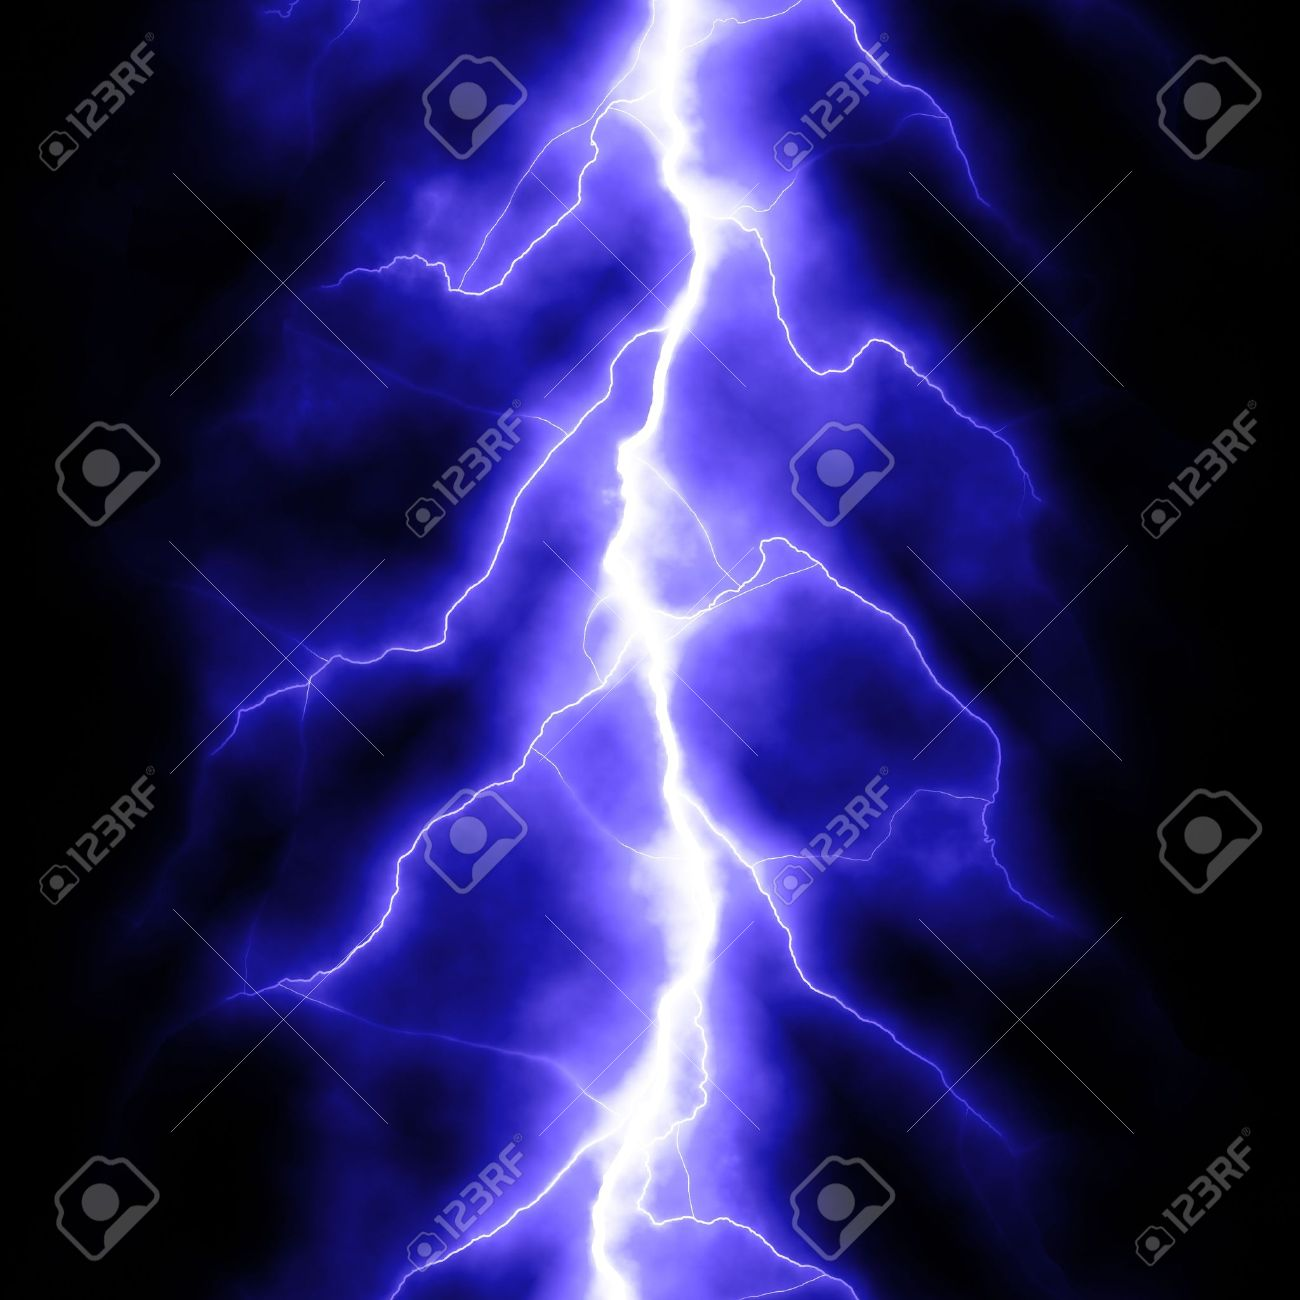 Blue Lightning Bolt Over Black Stock Photo